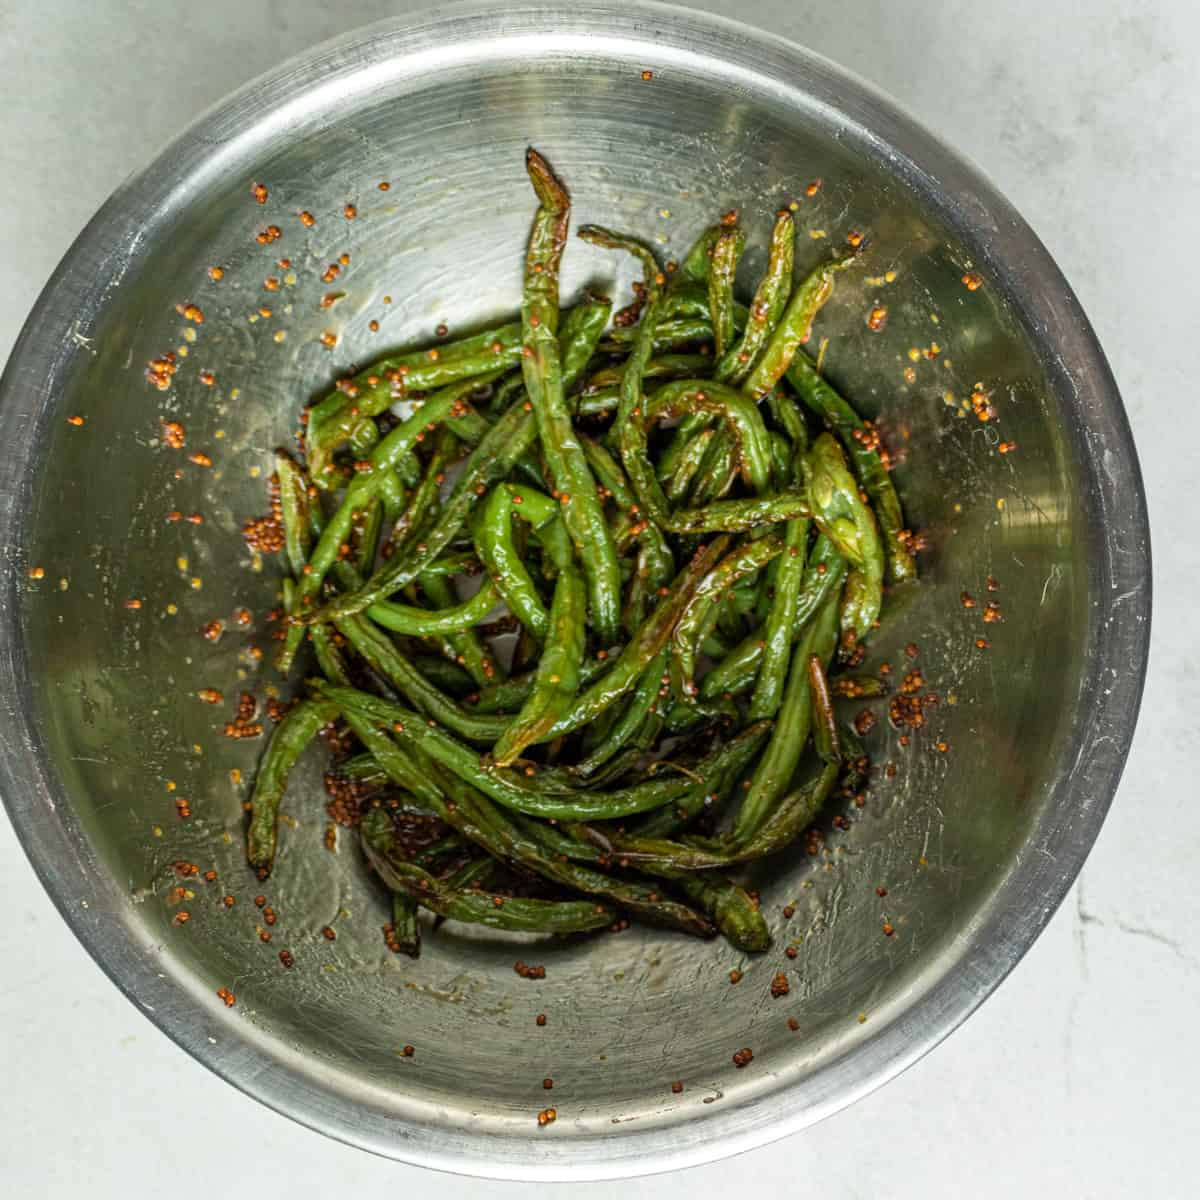 Cooked green beans in a large metal mixing bowl, tossed in mustard and honey. Set on a white background.